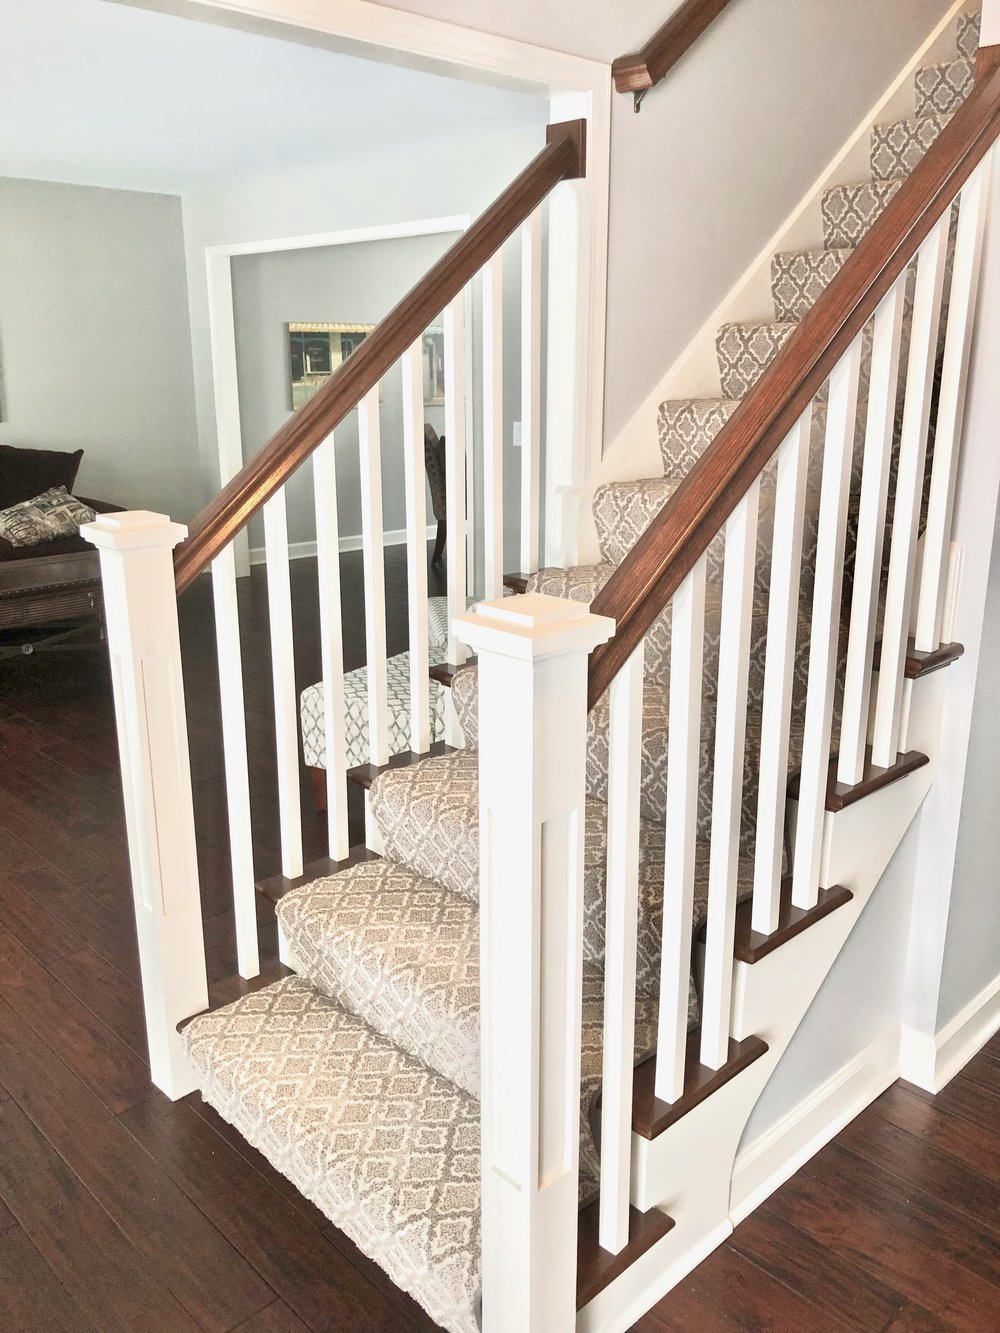 Southampton Also Remodeled the Foyer Stair Case with These New Hand Rails and Square Spindles. Add a New Carpet Runner and Chopped Off the First Step to Streamline the Look and Get Ride of the Full Volutes. Looking to Remodel Your Foyer Stairs? Give Southampton a Call- Located in Geneva IL. Stair REMODELING. Foyer RENOVATIONS